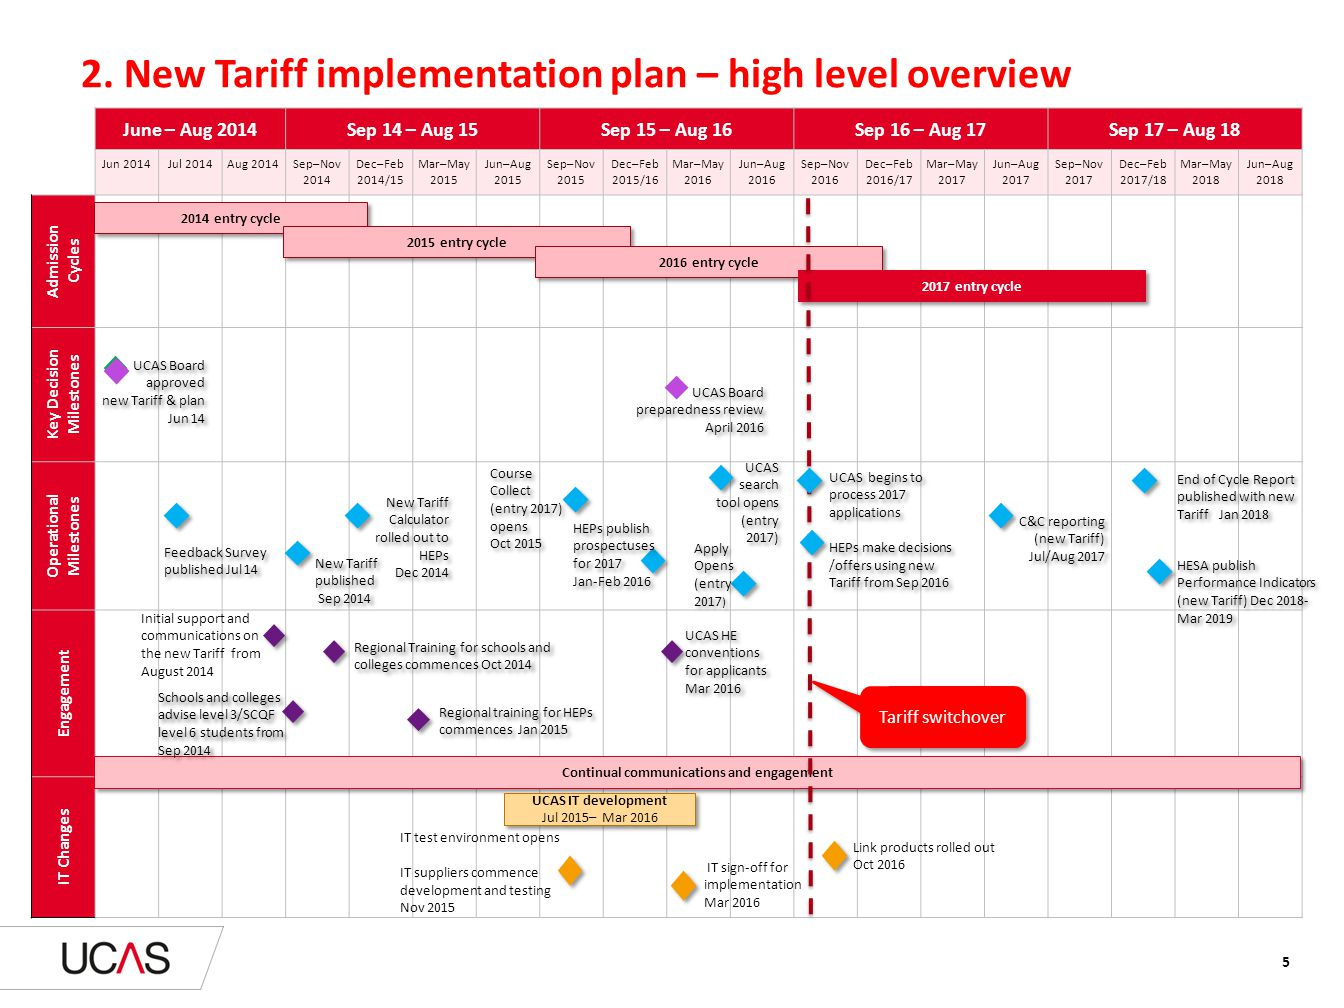 2. New Tariff implementation plan – high level overview